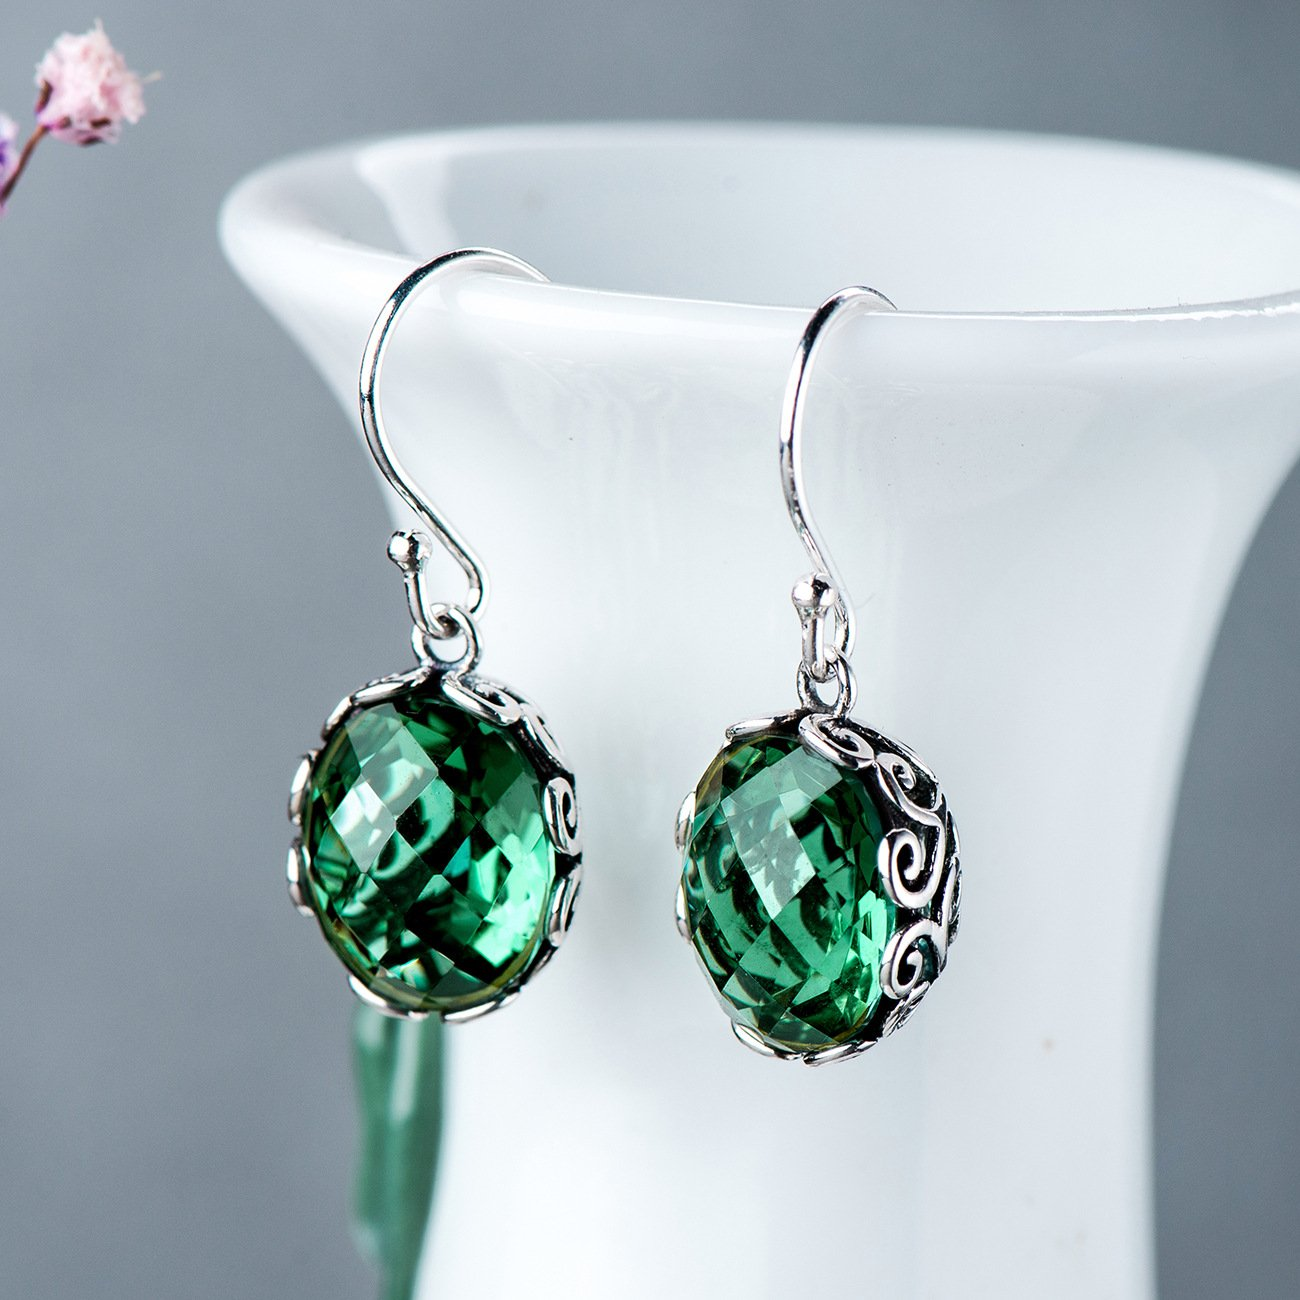 Vintage Green Crystal Drop Earrings